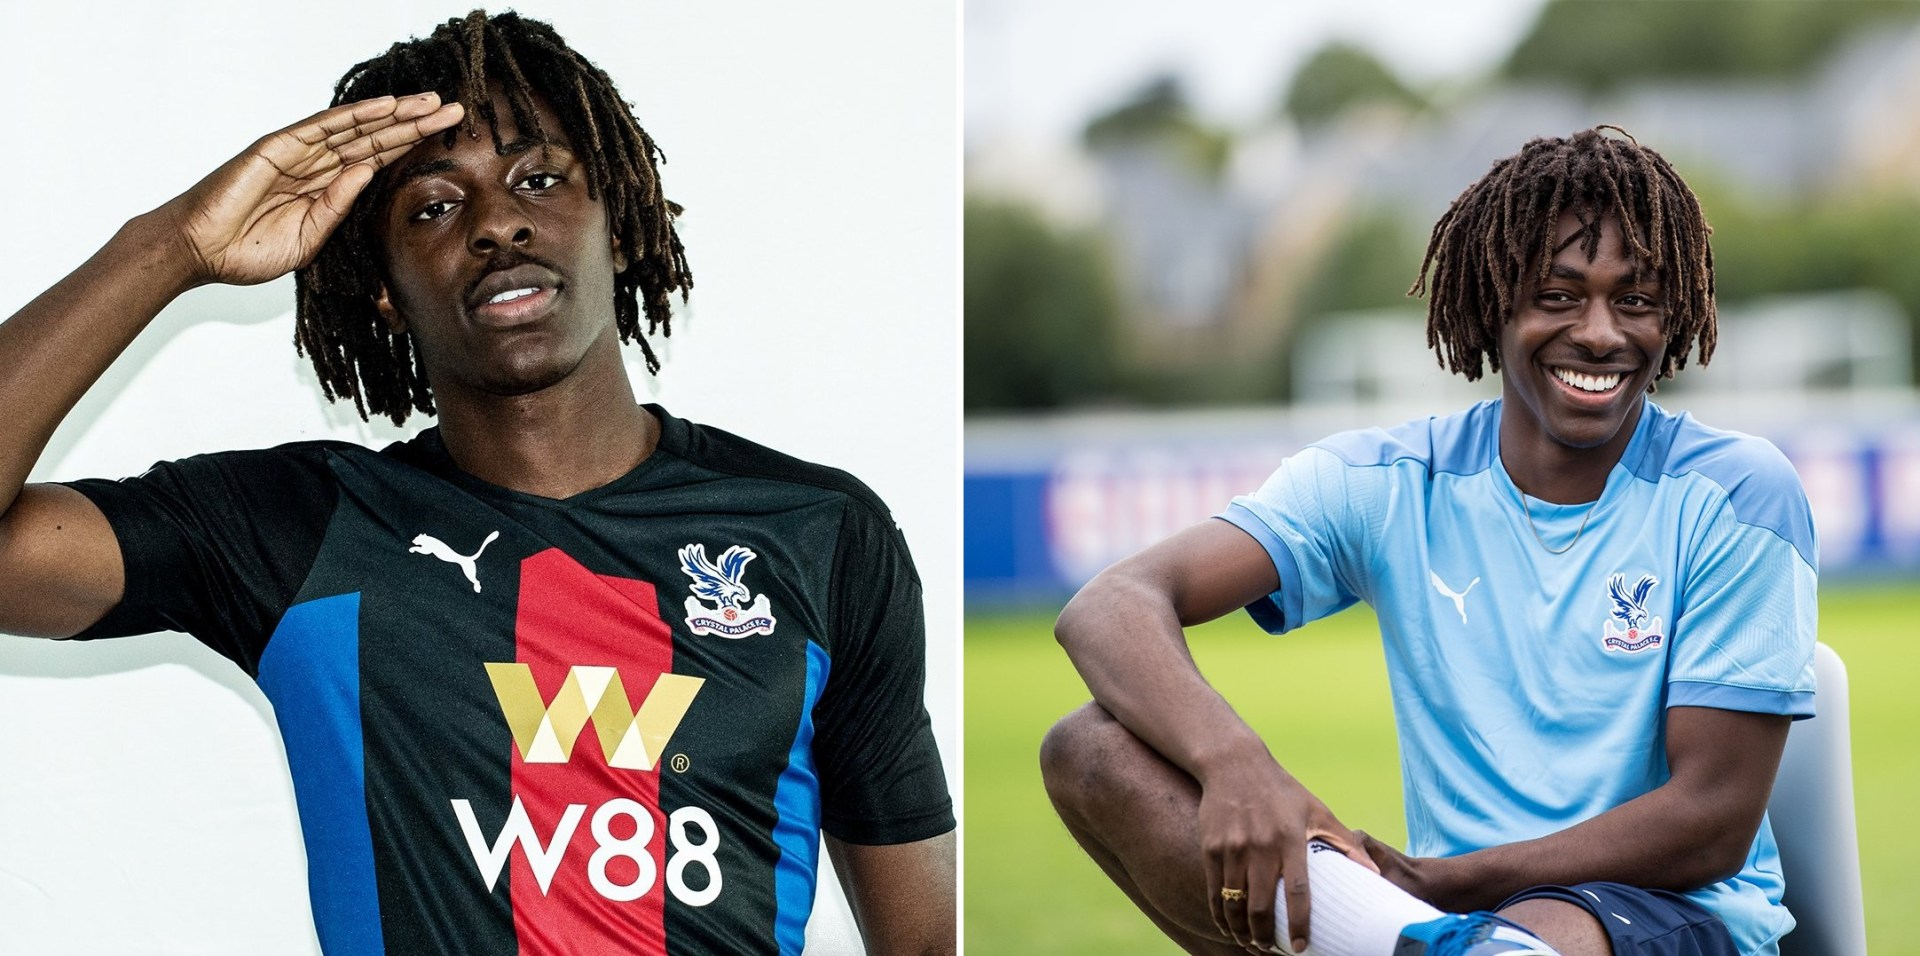 Its not easy: Crystal Palace newcomer Eberechi Eze teaches how to say his name - THE SPORTS ROOM